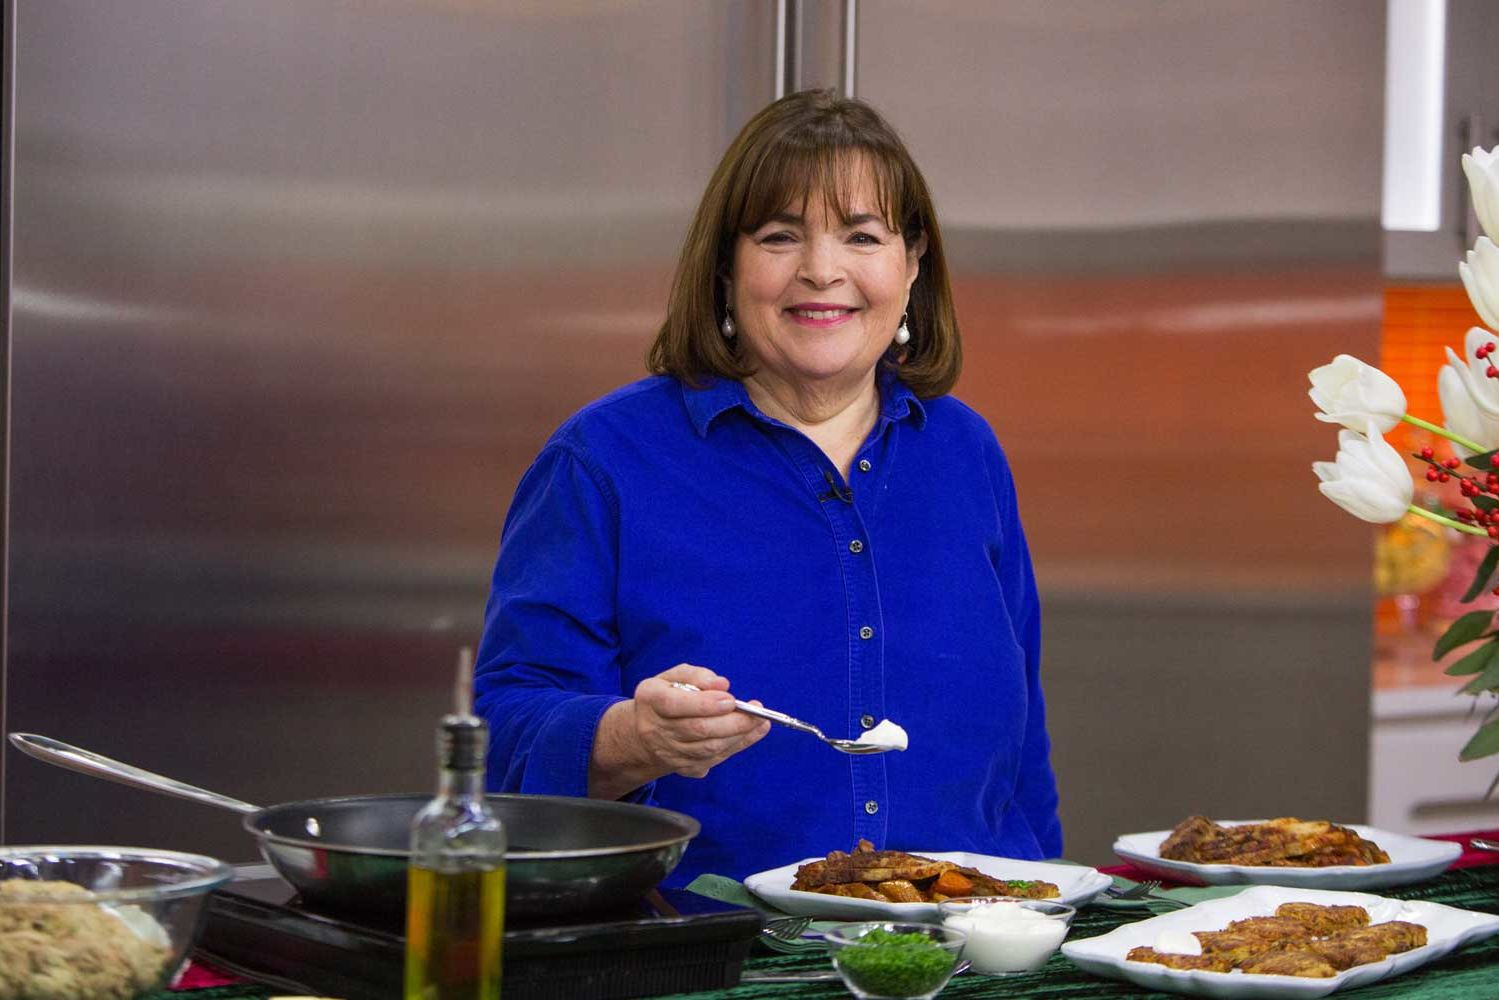 This Is the Only Fast Food Ina Garten Will Eat